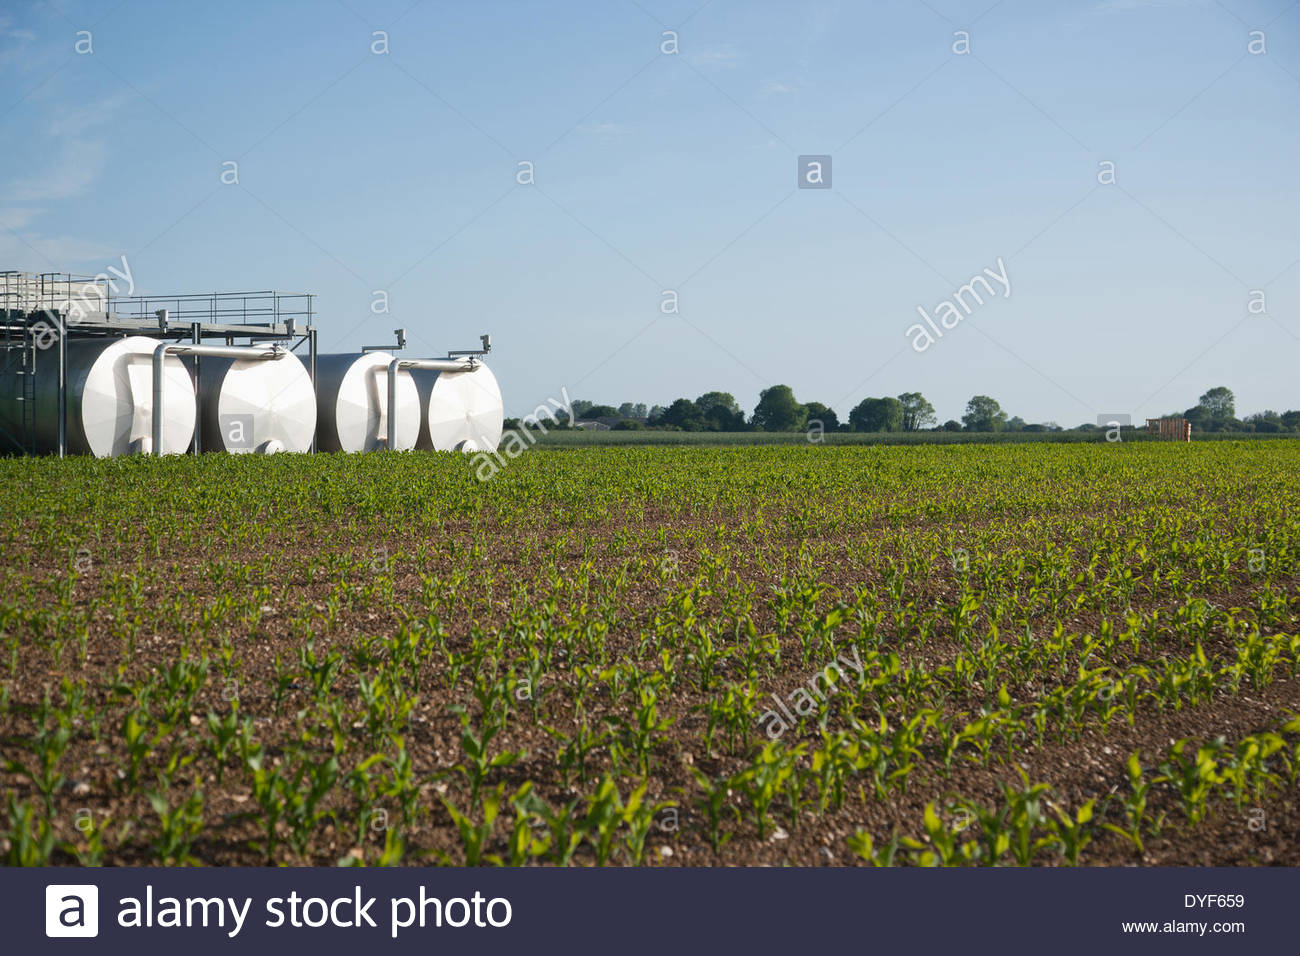 Tanks by field under blue sky - Stock Image